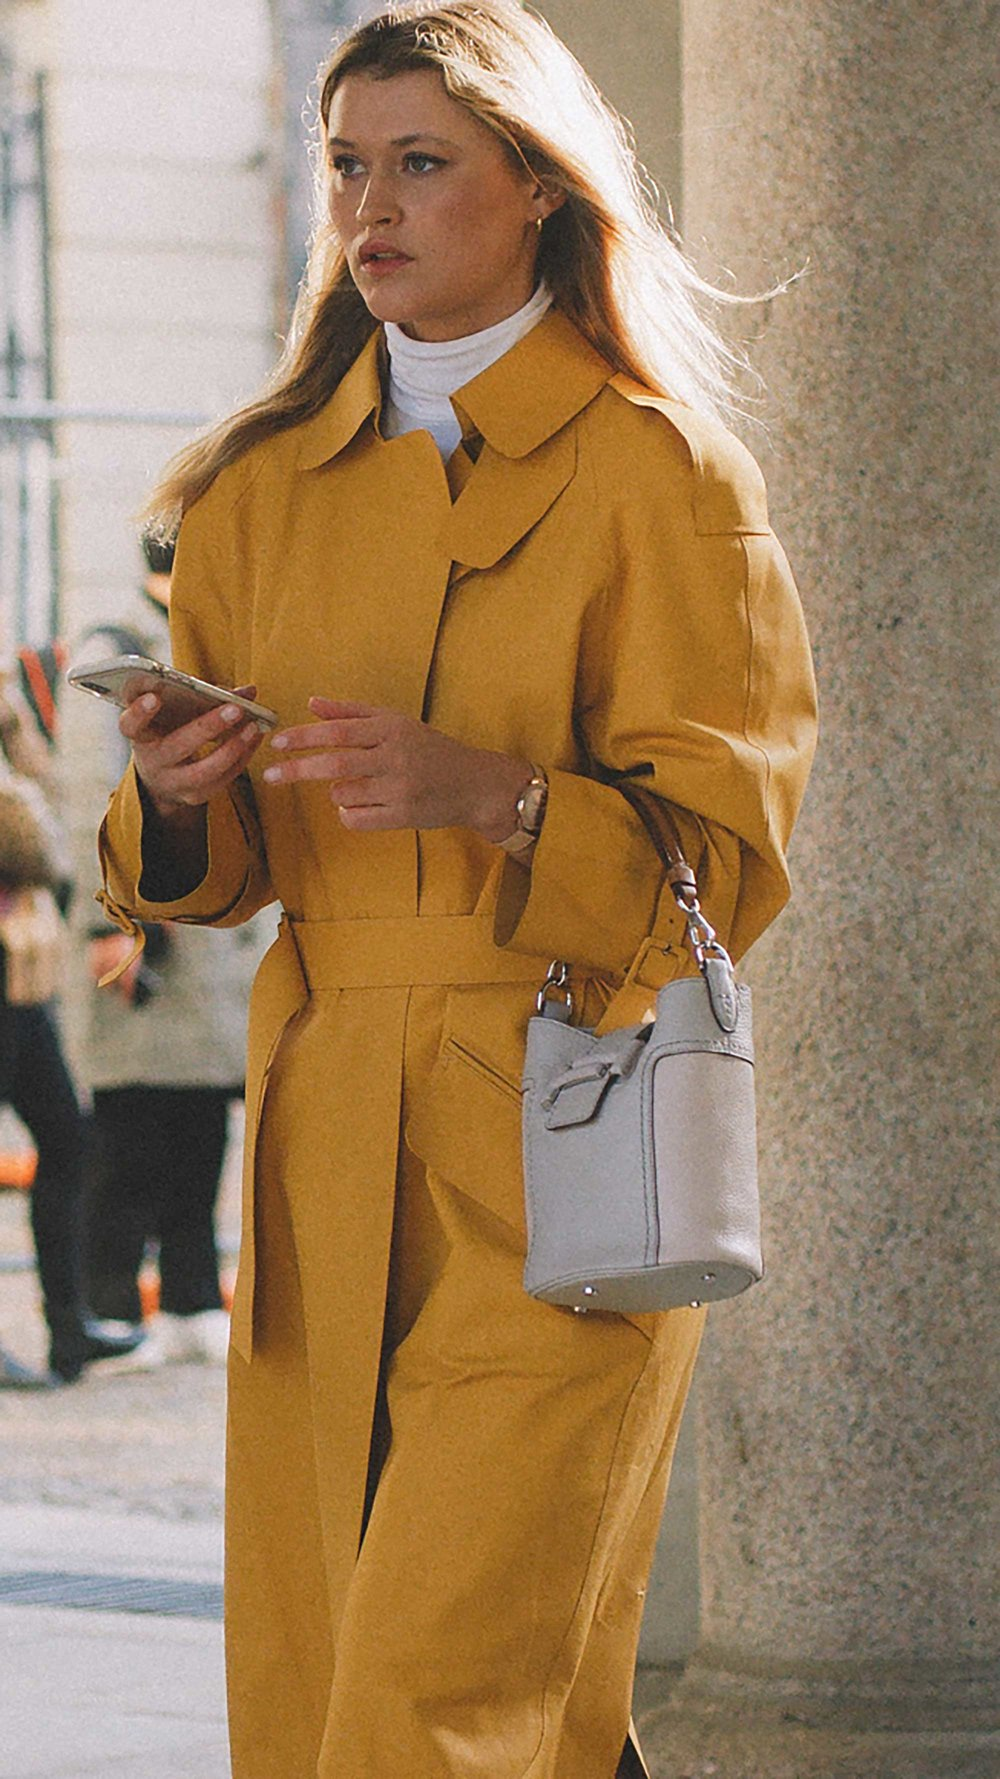 est outfits of Milan Fashion Week street style day two MFW FW19 3.jpg